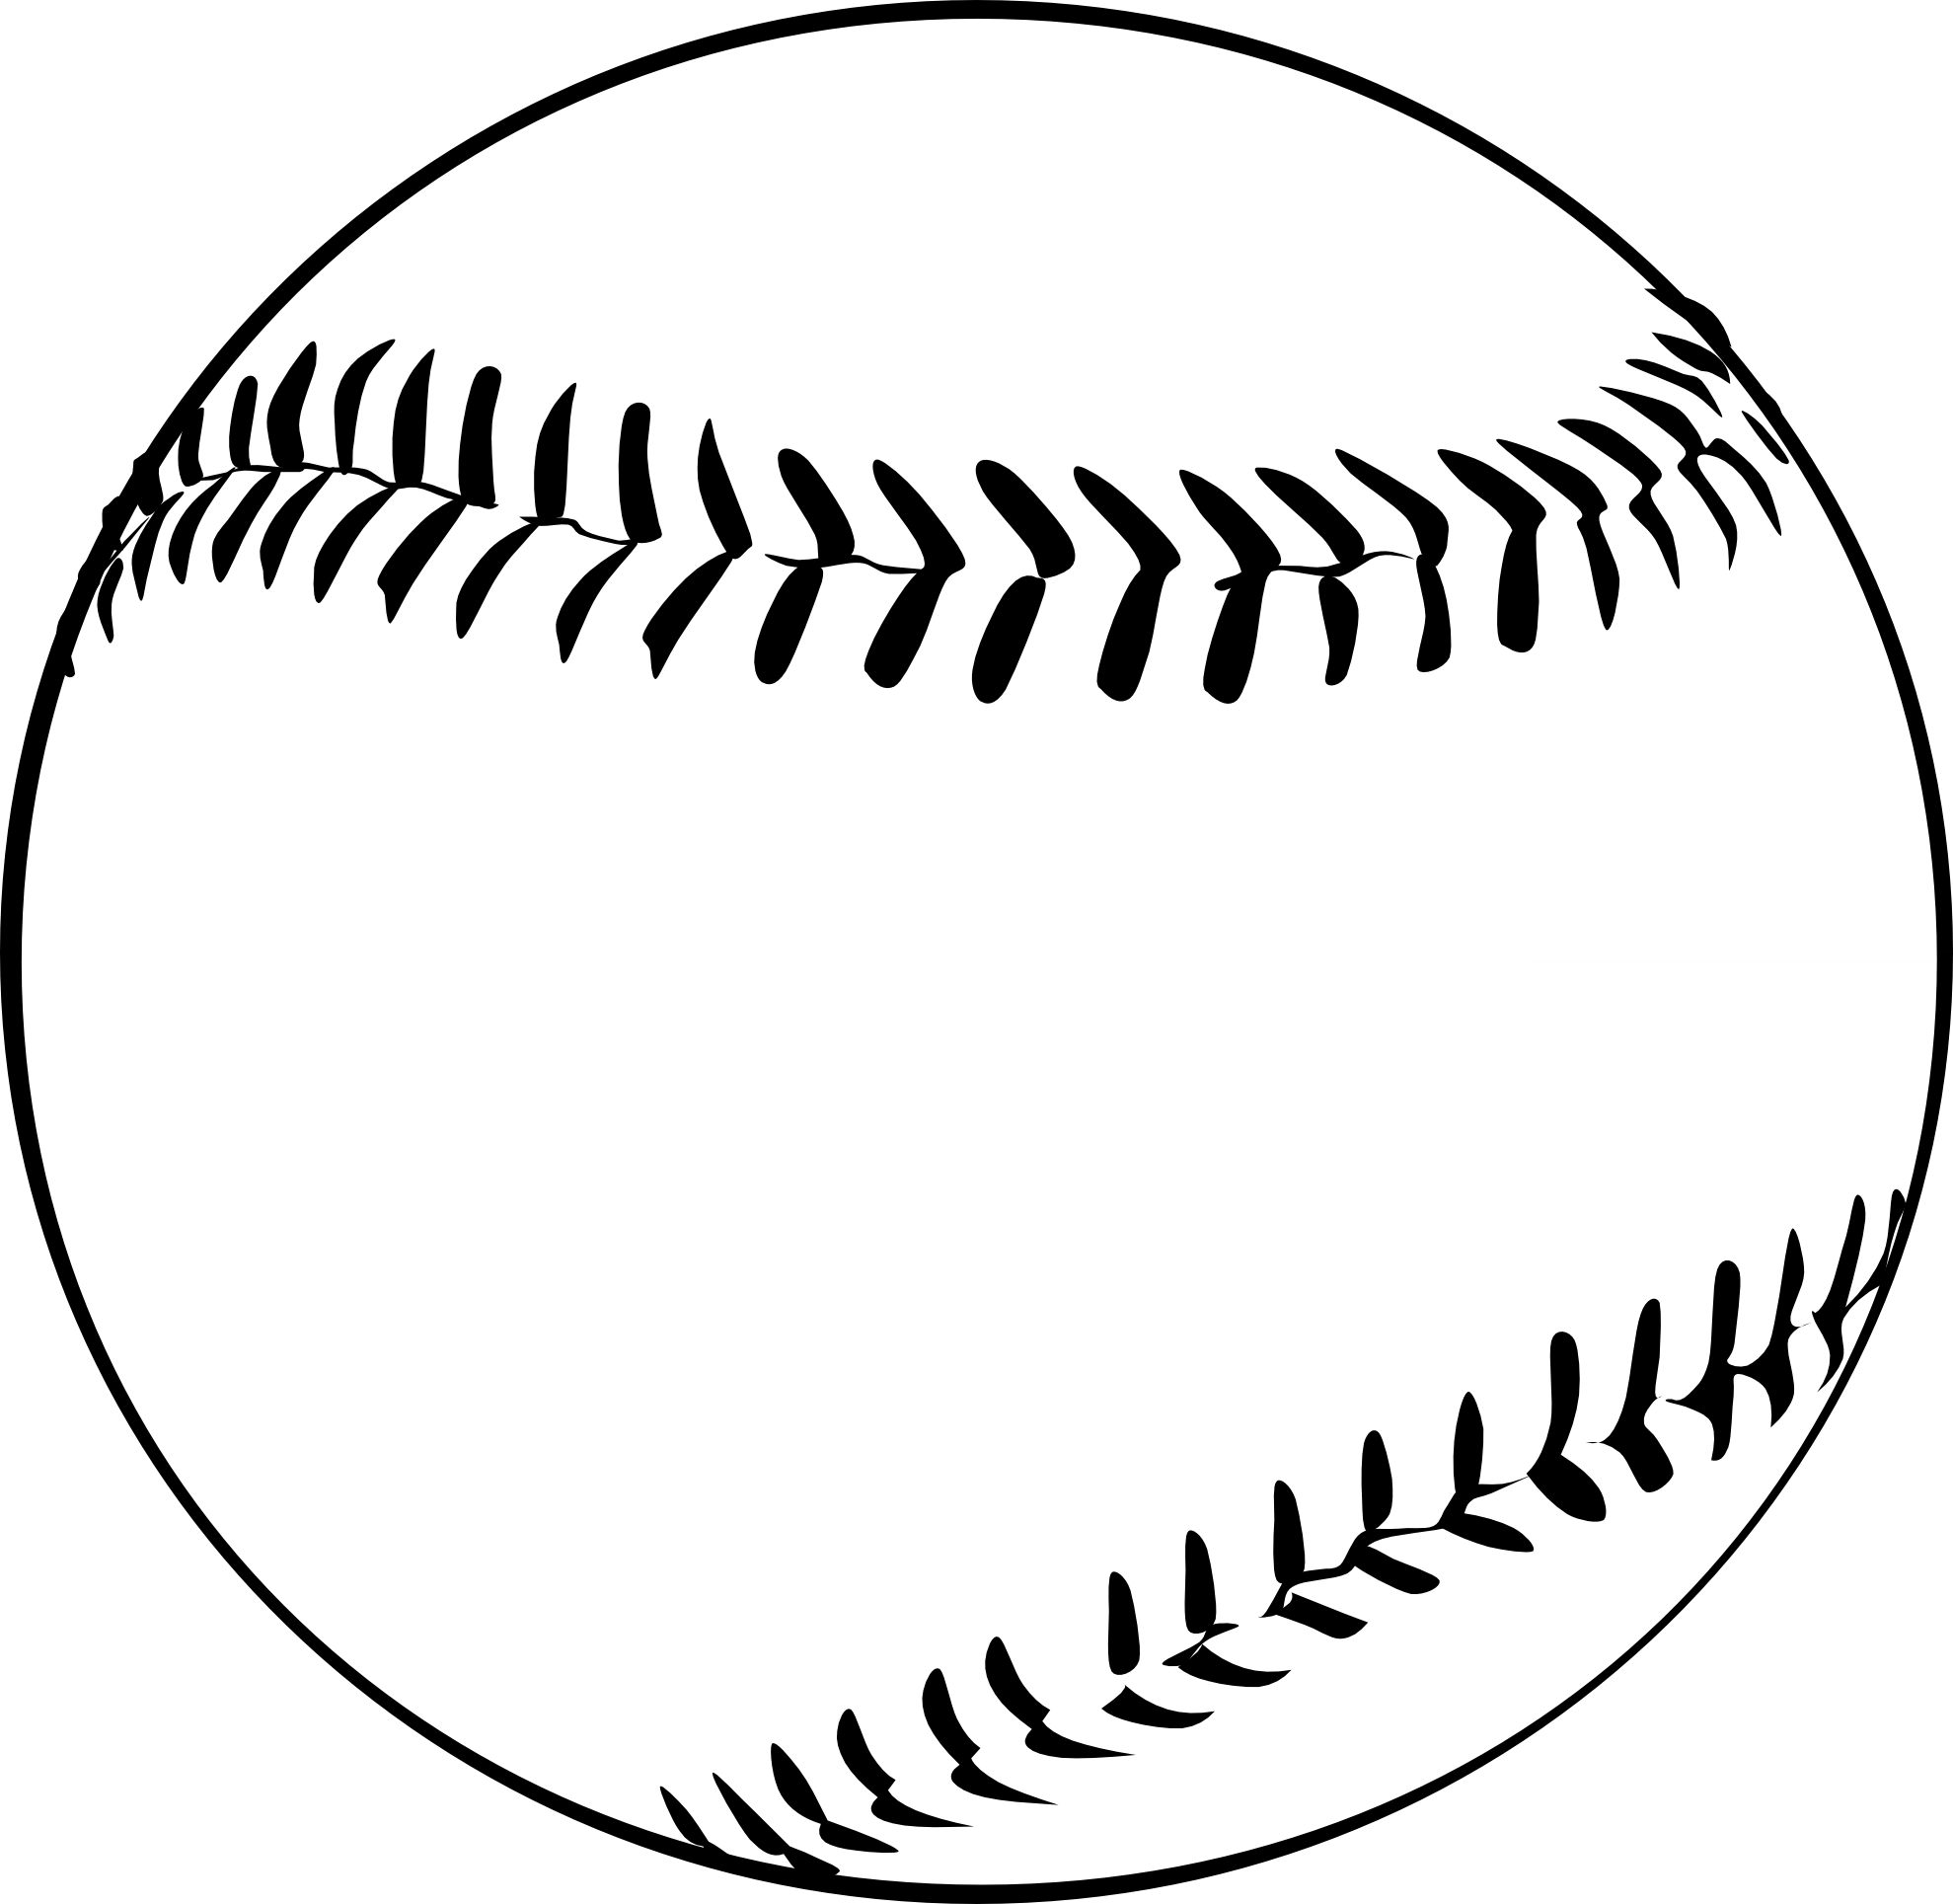 Black And White Baseball Ball